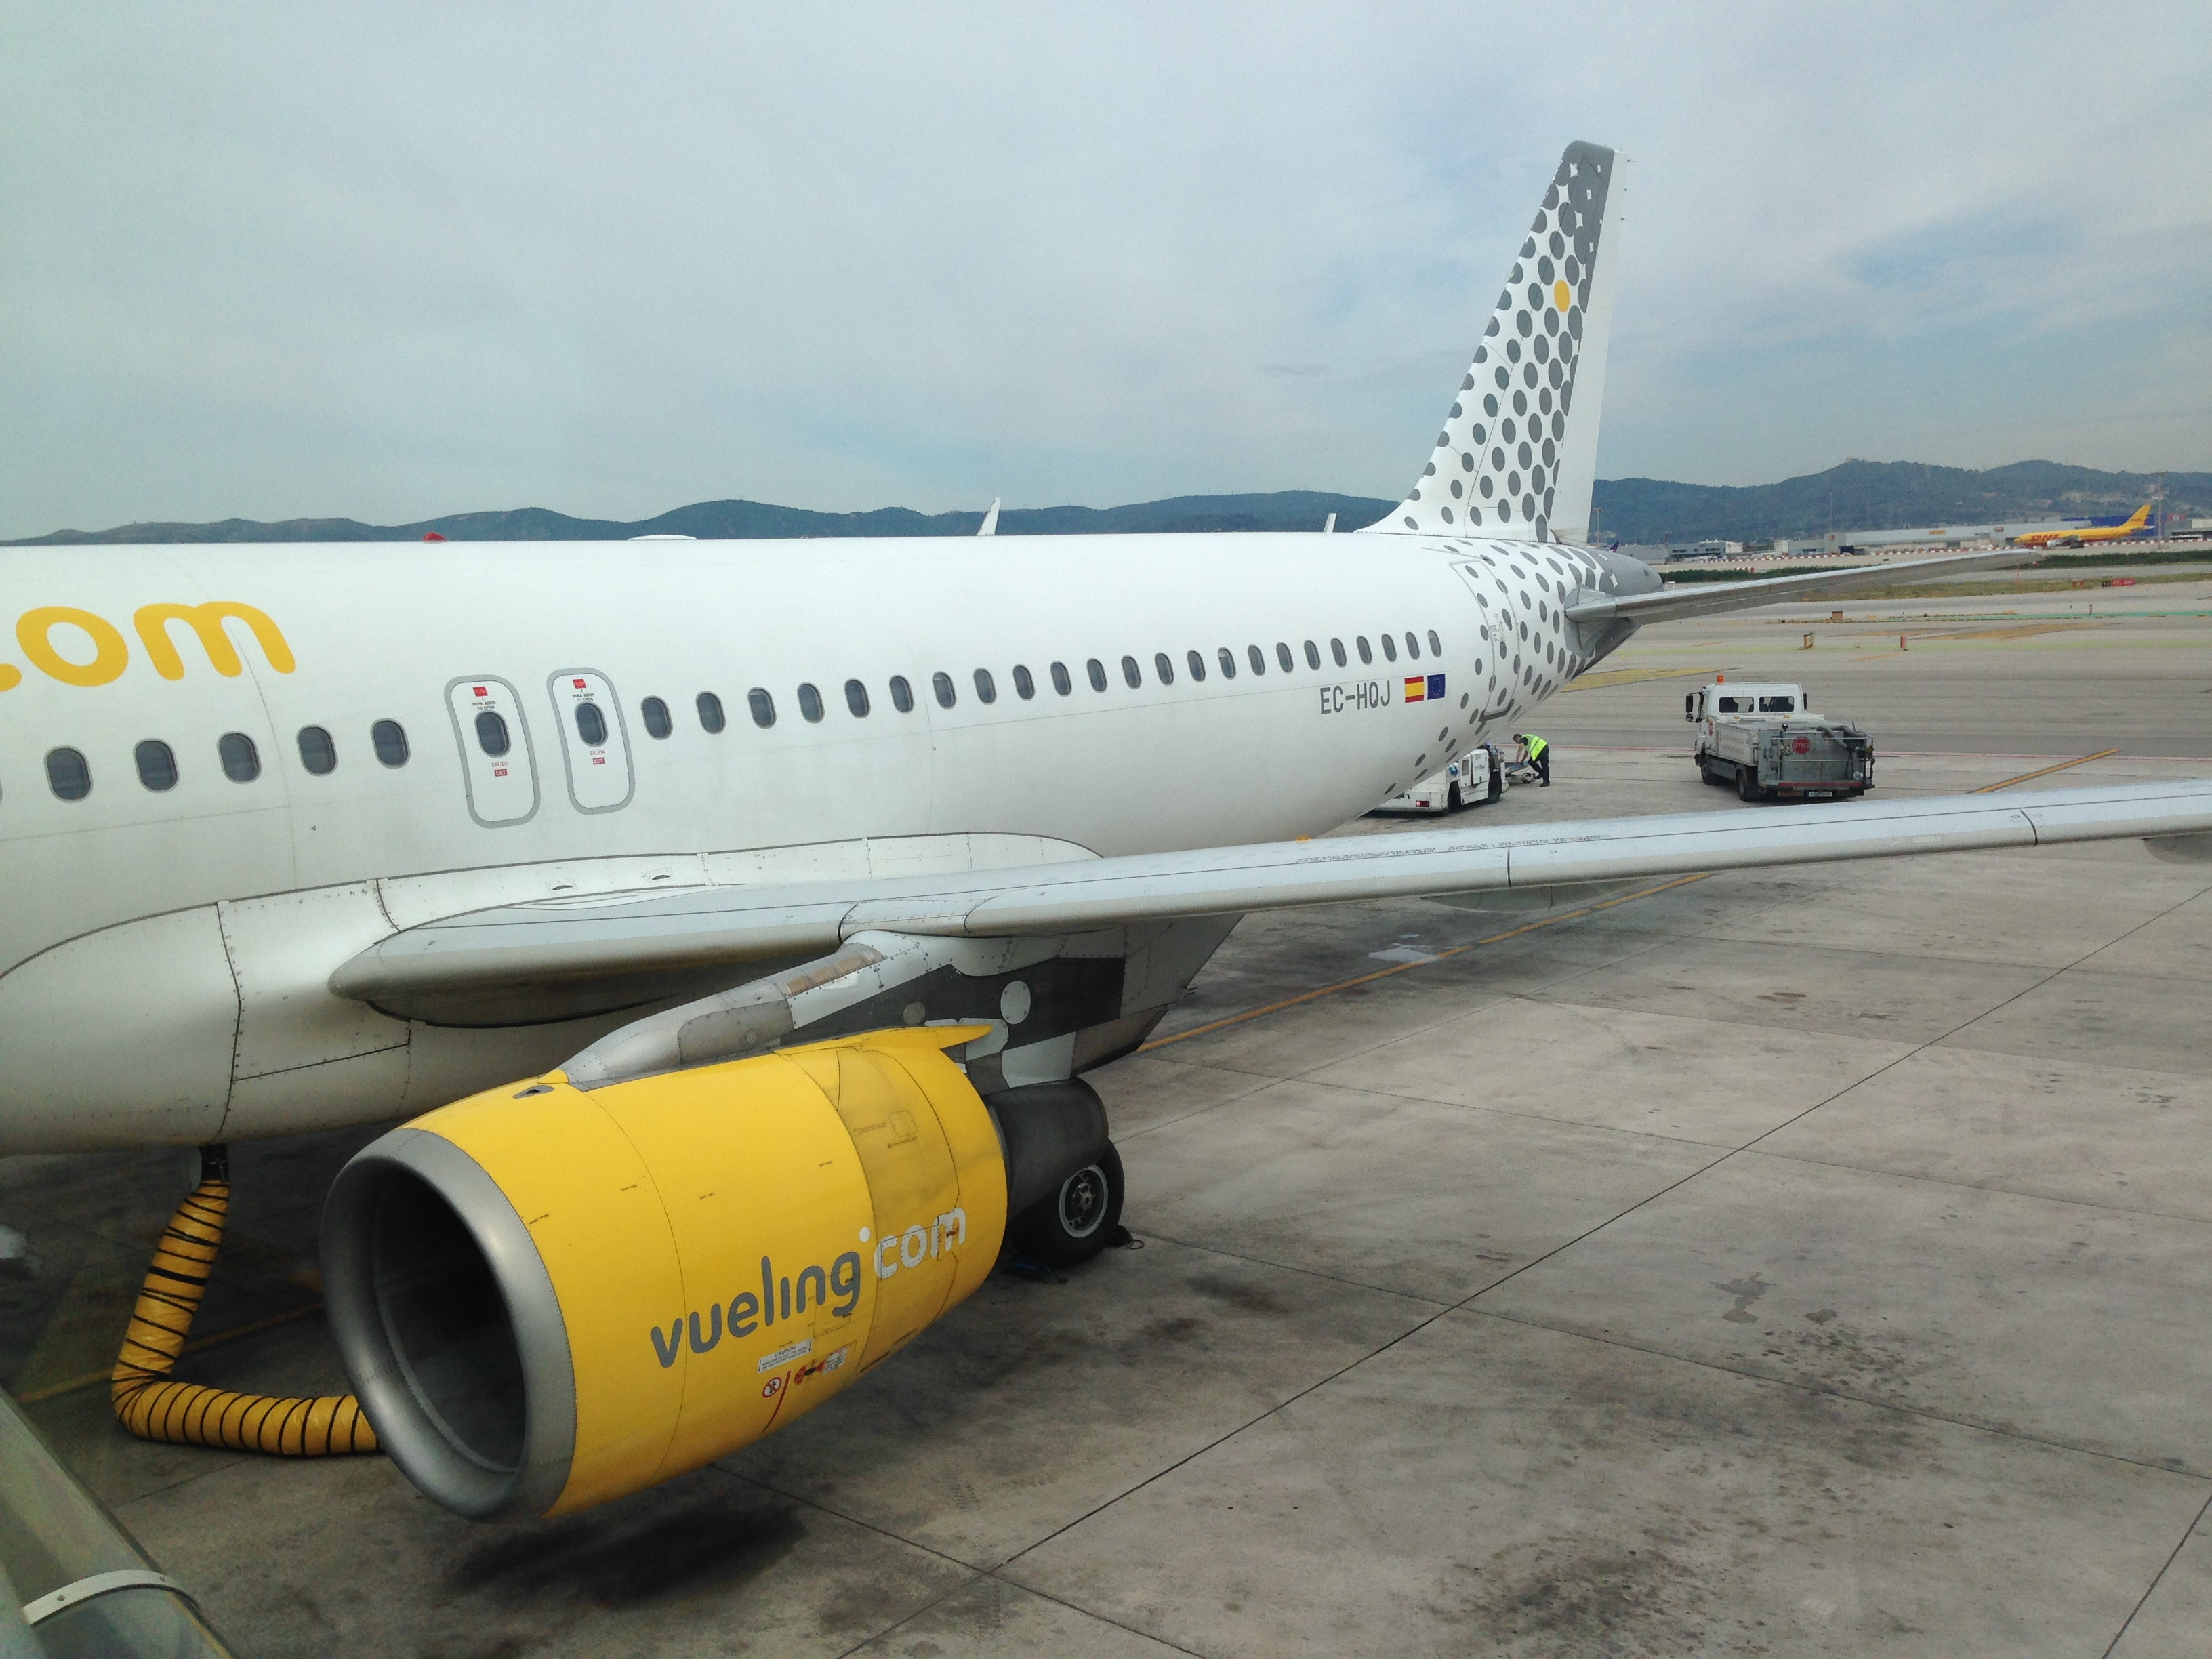 Vueling Airlines Review: Vueling Airlines A320-200 (bcn-rak, Vy 7332) - The